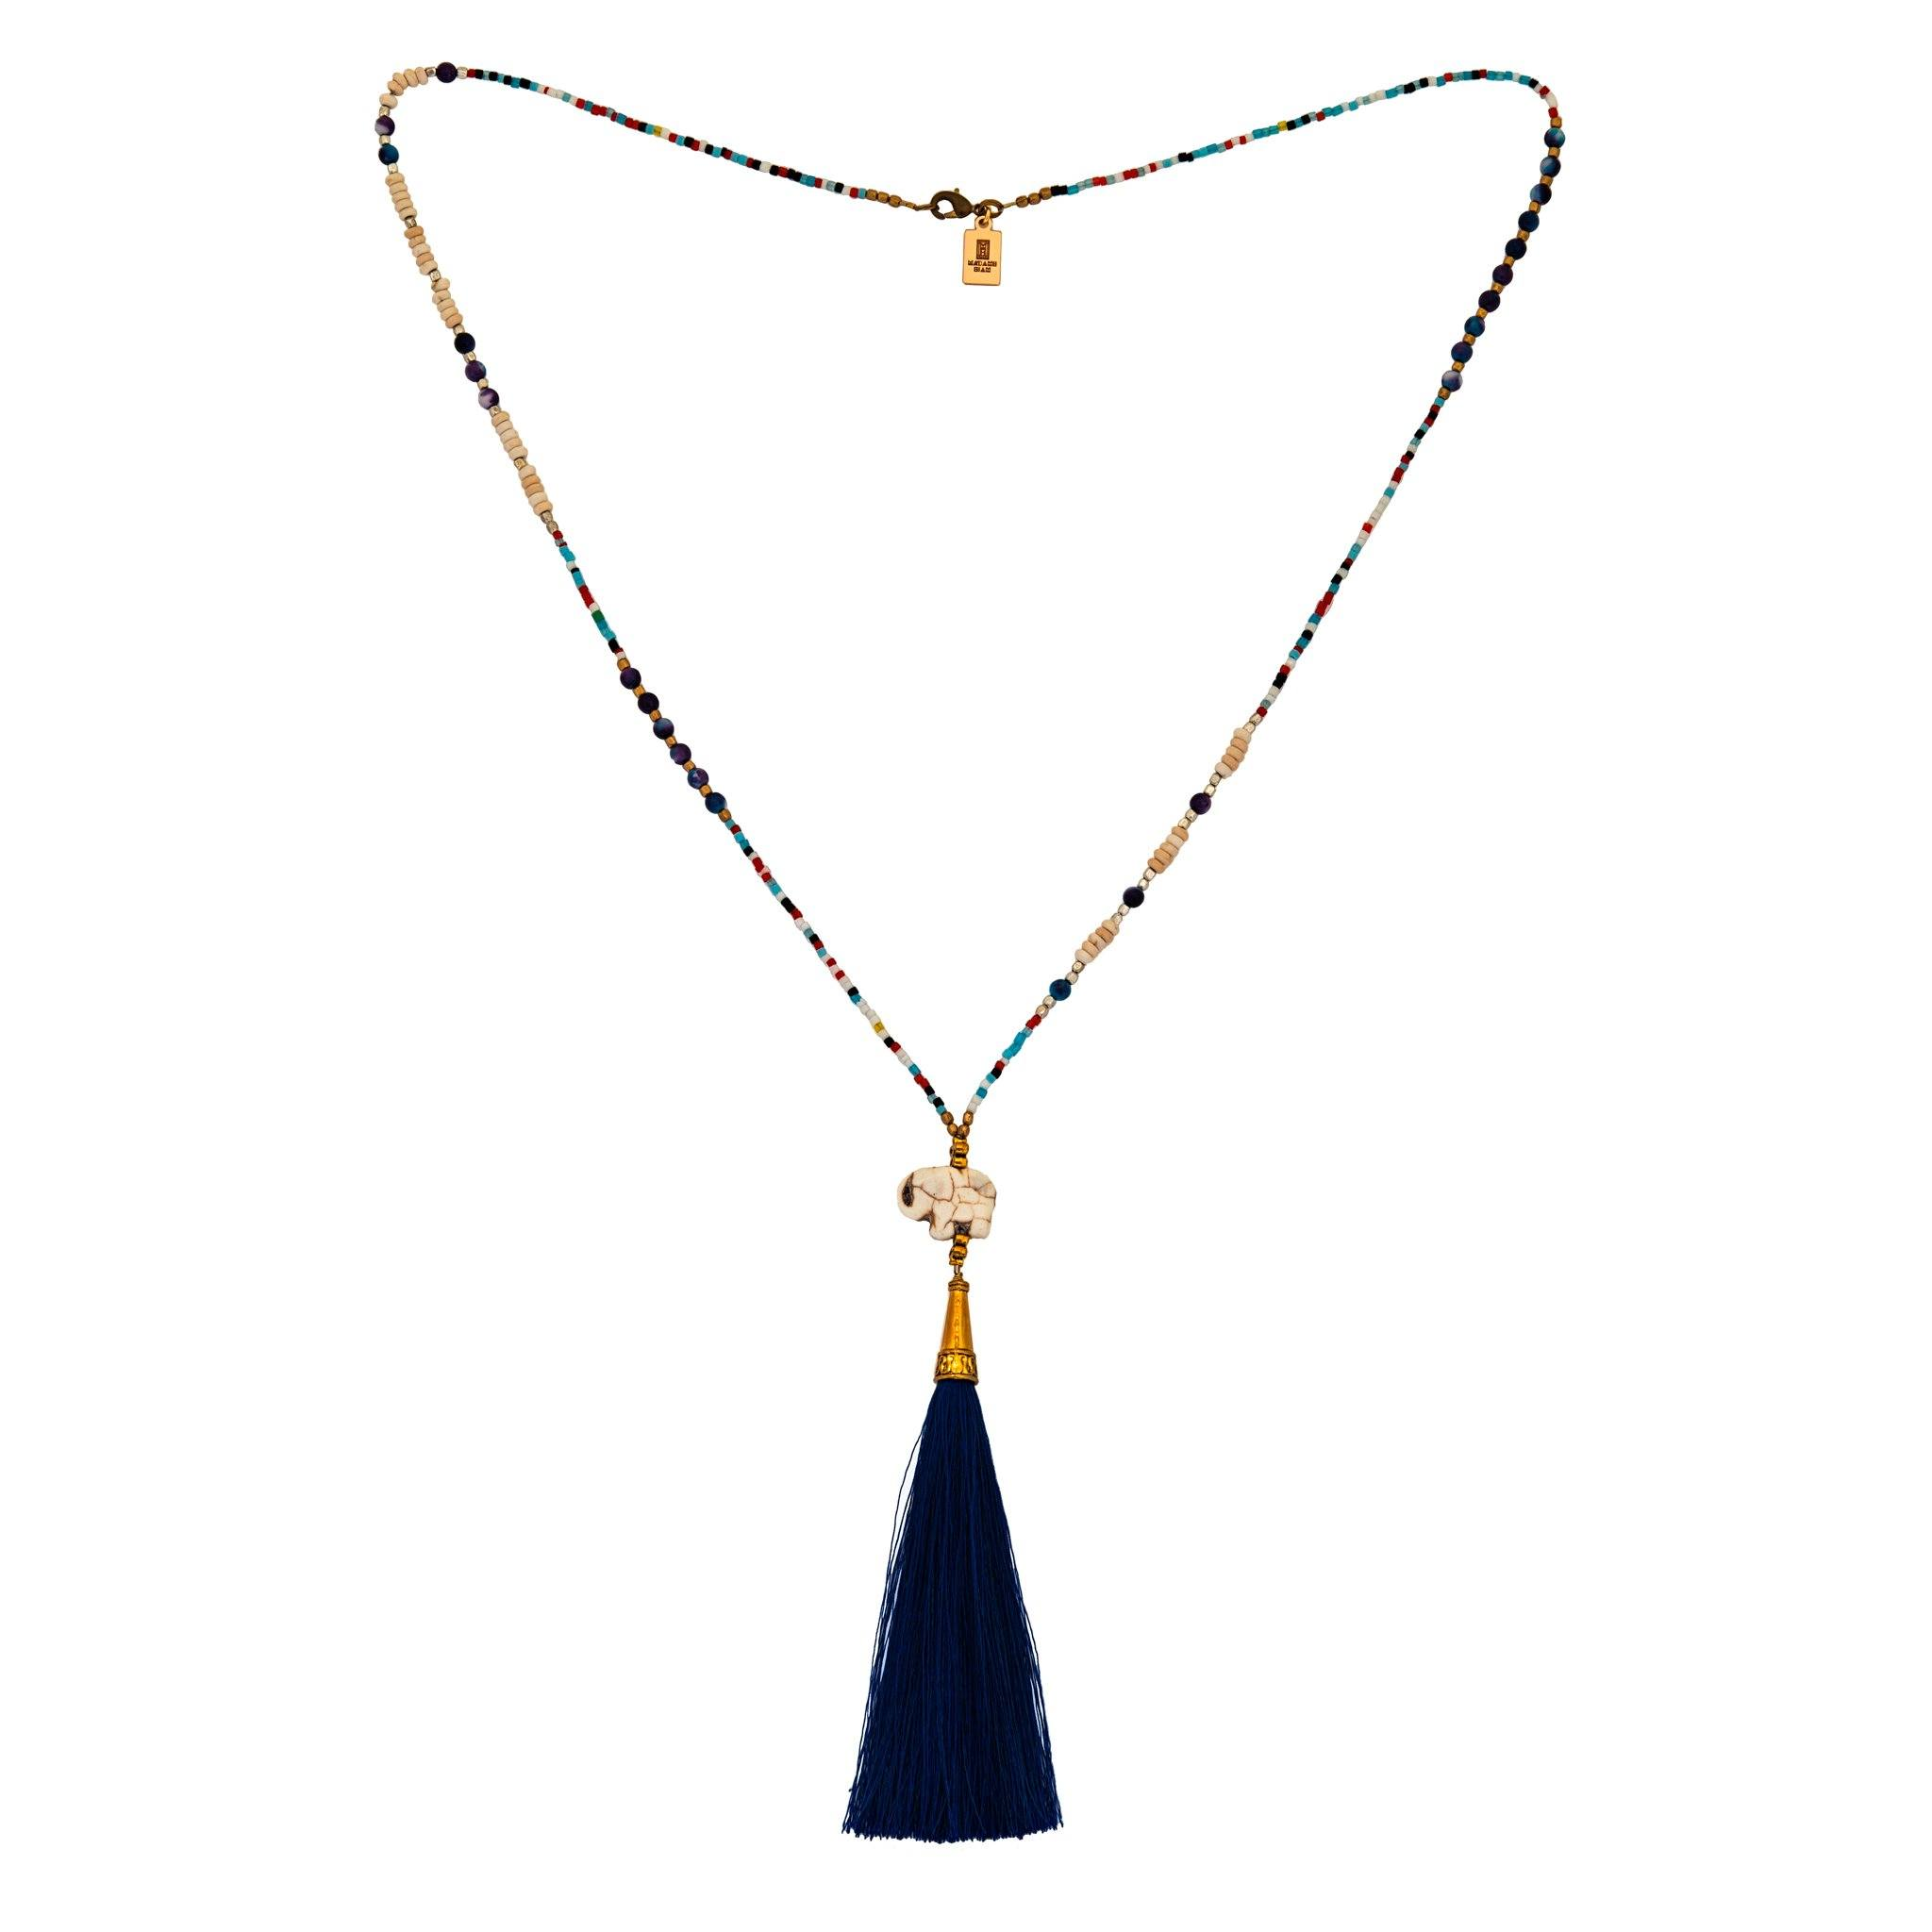 CHANG blue tassel necklace - MadamSiam